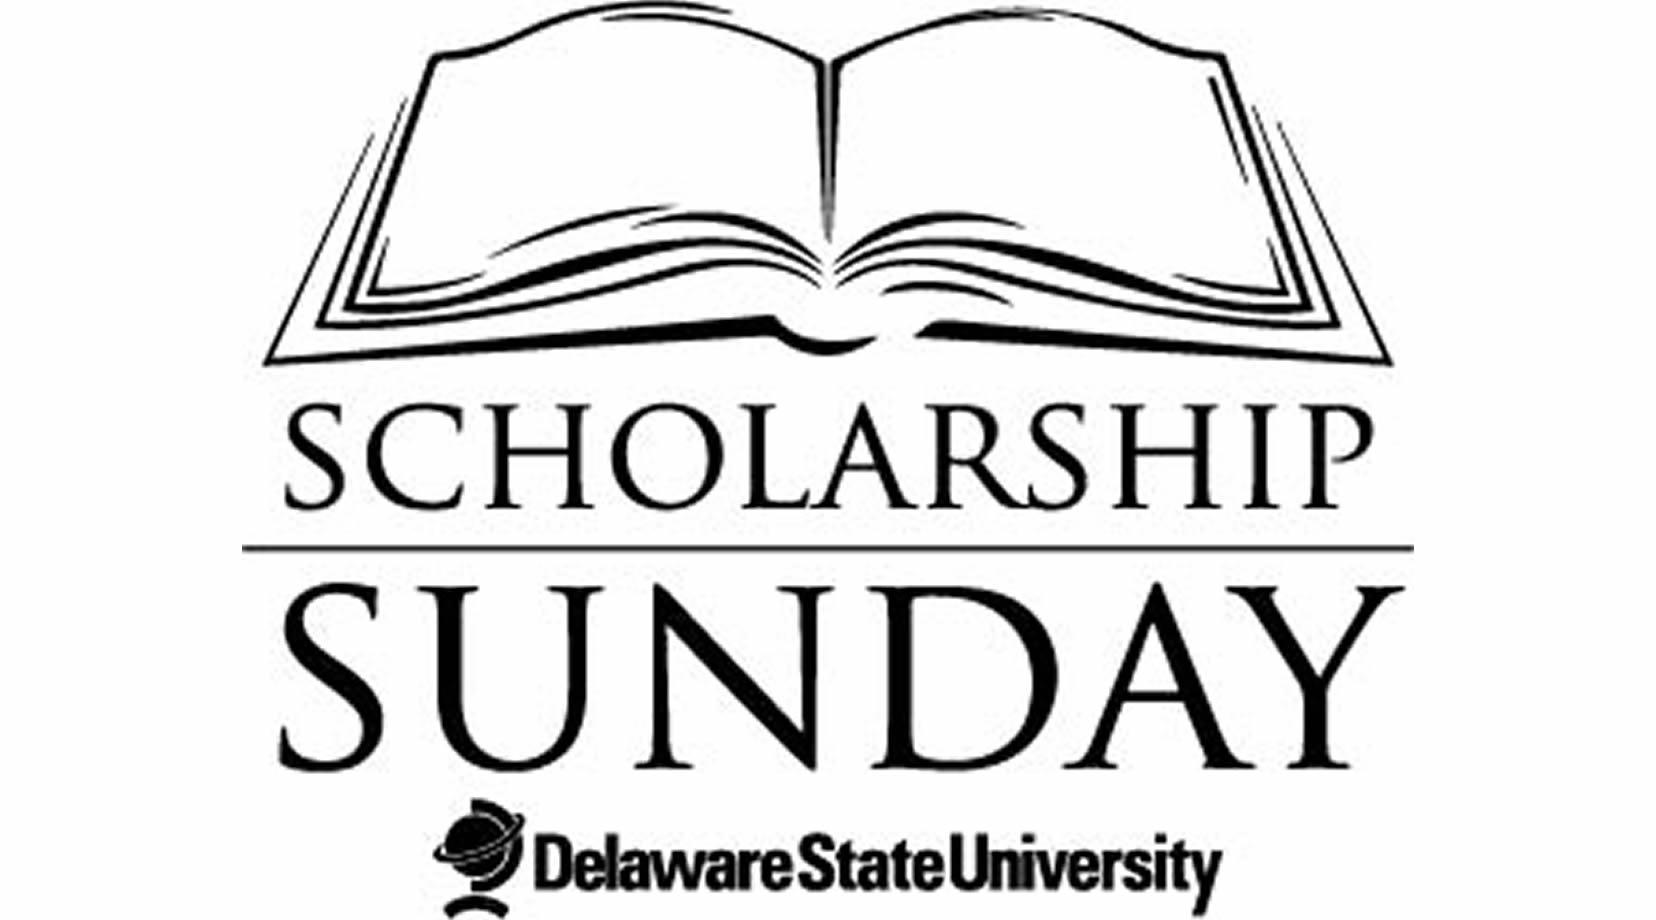 Scholarship Sunday